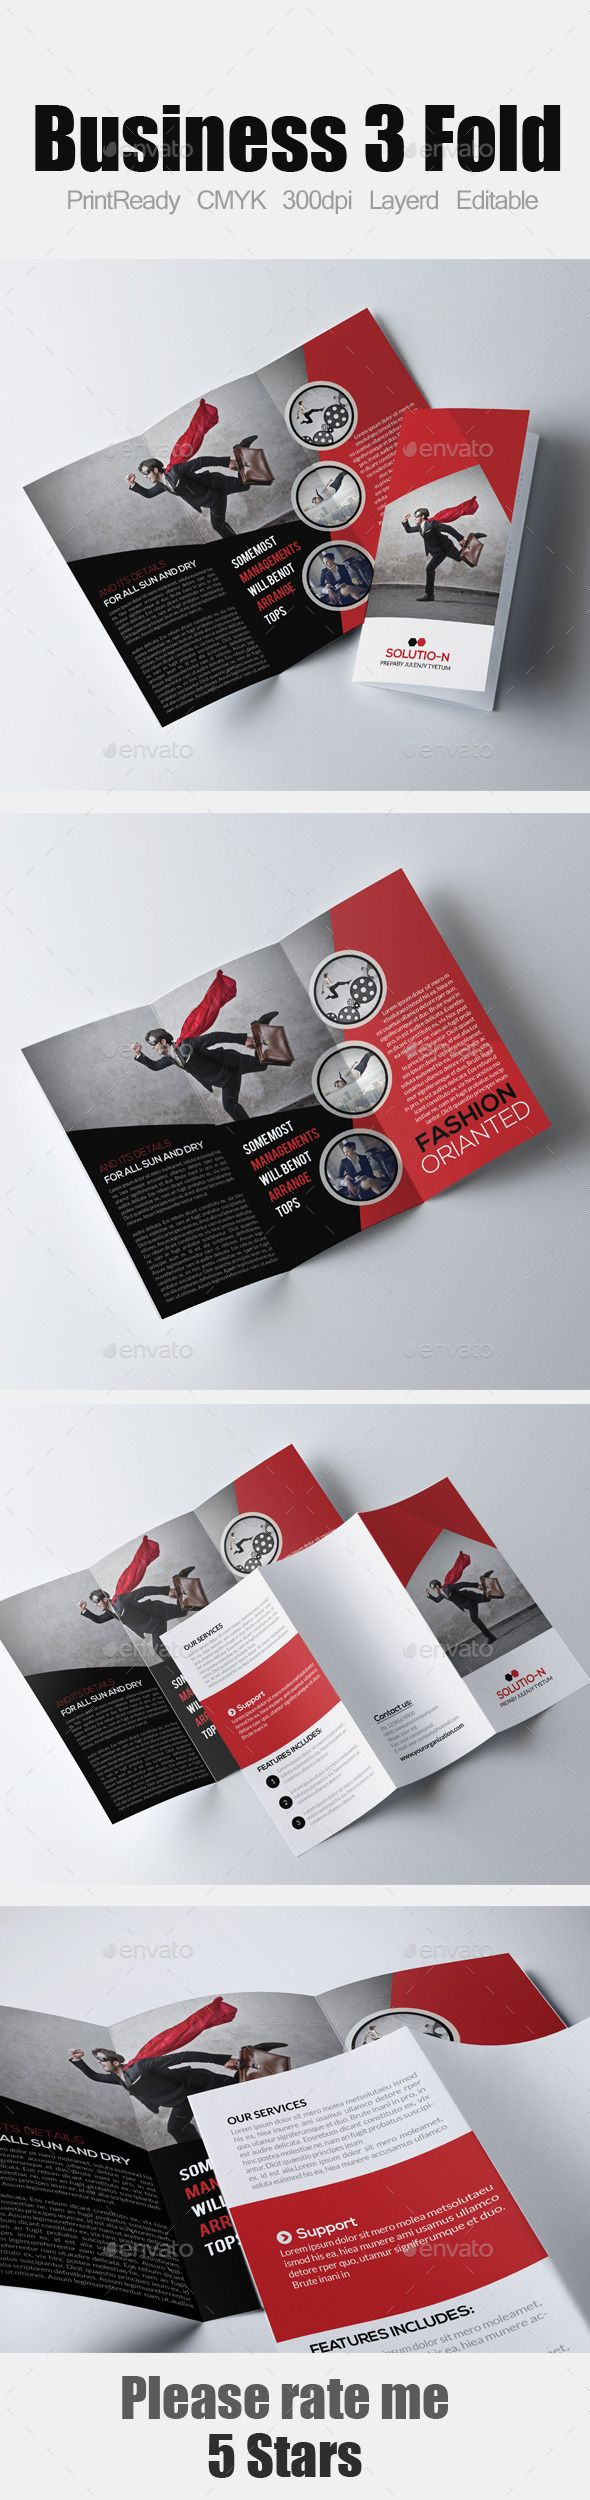 Tri Fold Business Brochure Template #design Download: http://graphicriver.net/item/tri-fold-business-brochure/12151563?ref=ksioks